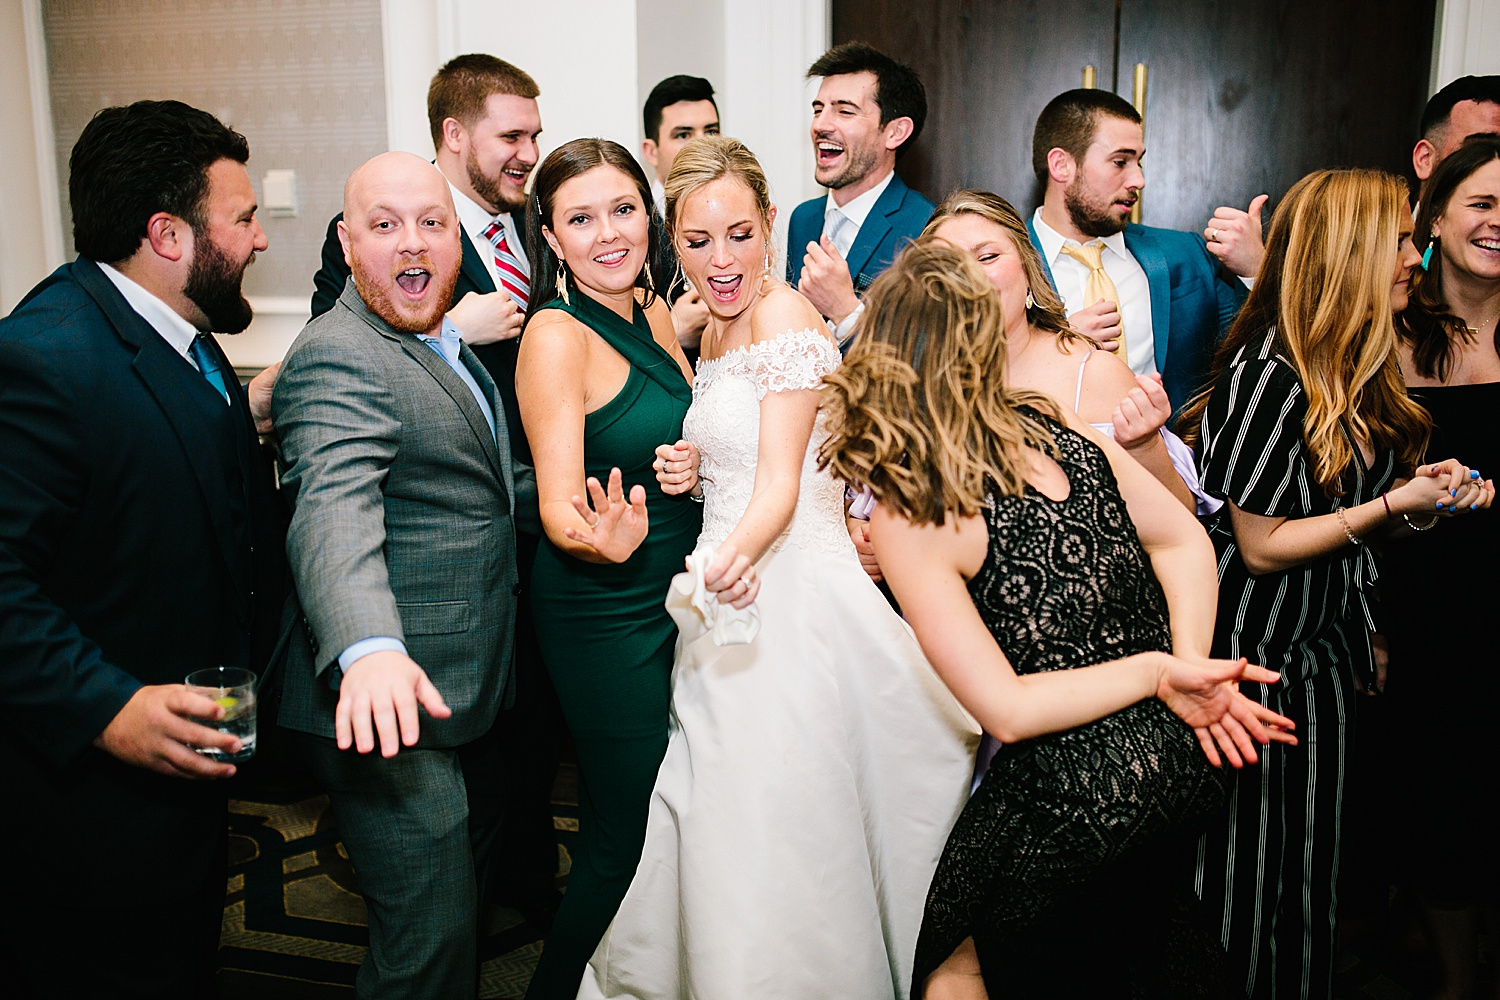 courtneyryan_sheraton_societyhill_philadelphia_merchantsexchange_wedding_image114.jpg